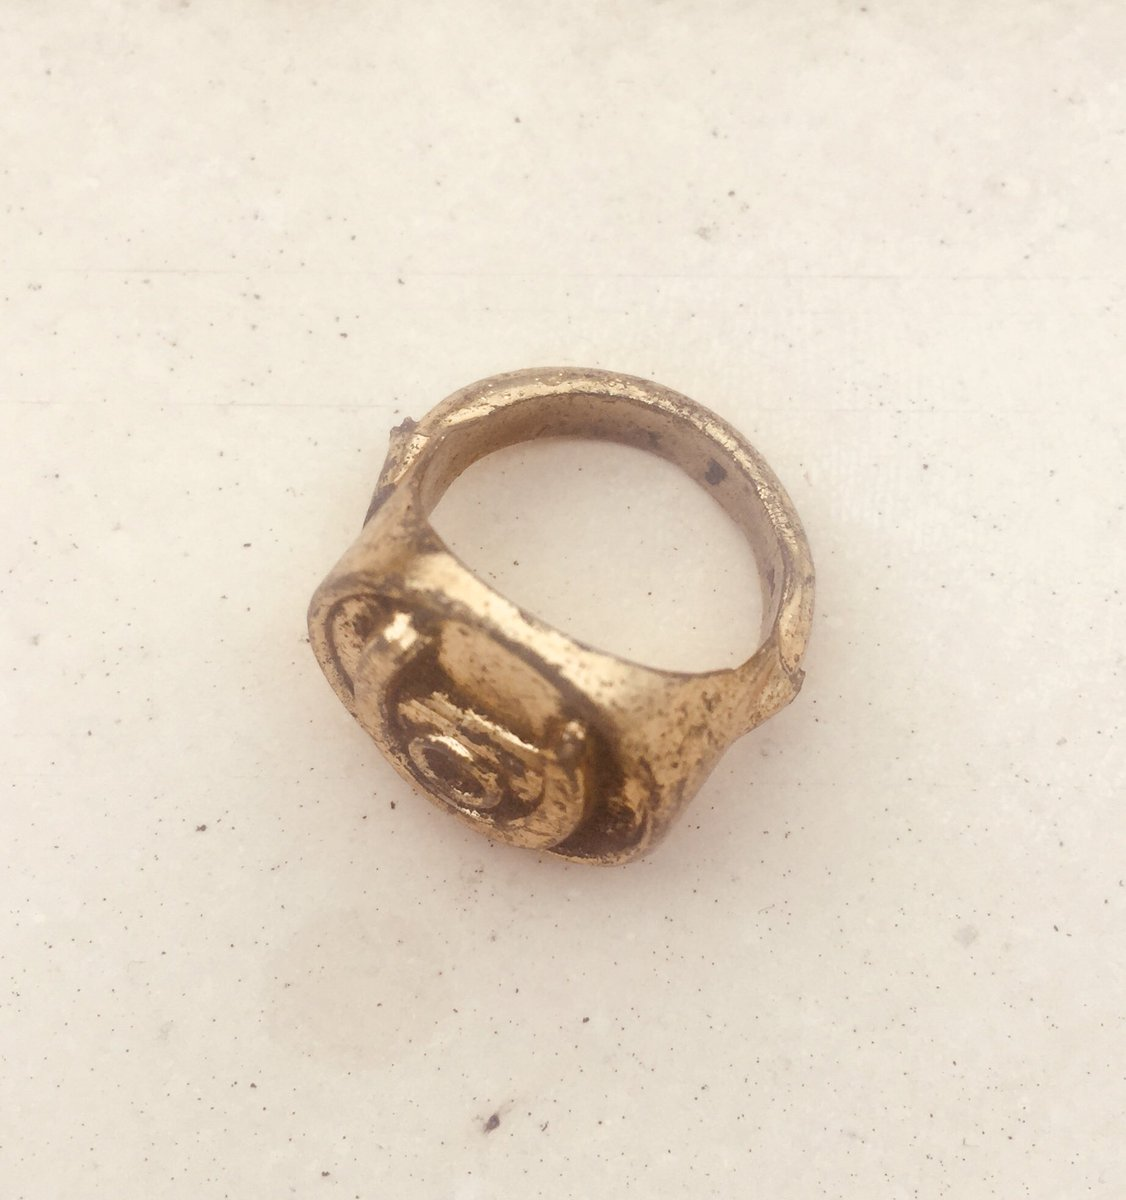 Dug up this classic 70s sovvy ring while gardening earlier. If you rub it three times, Bobby George appears.